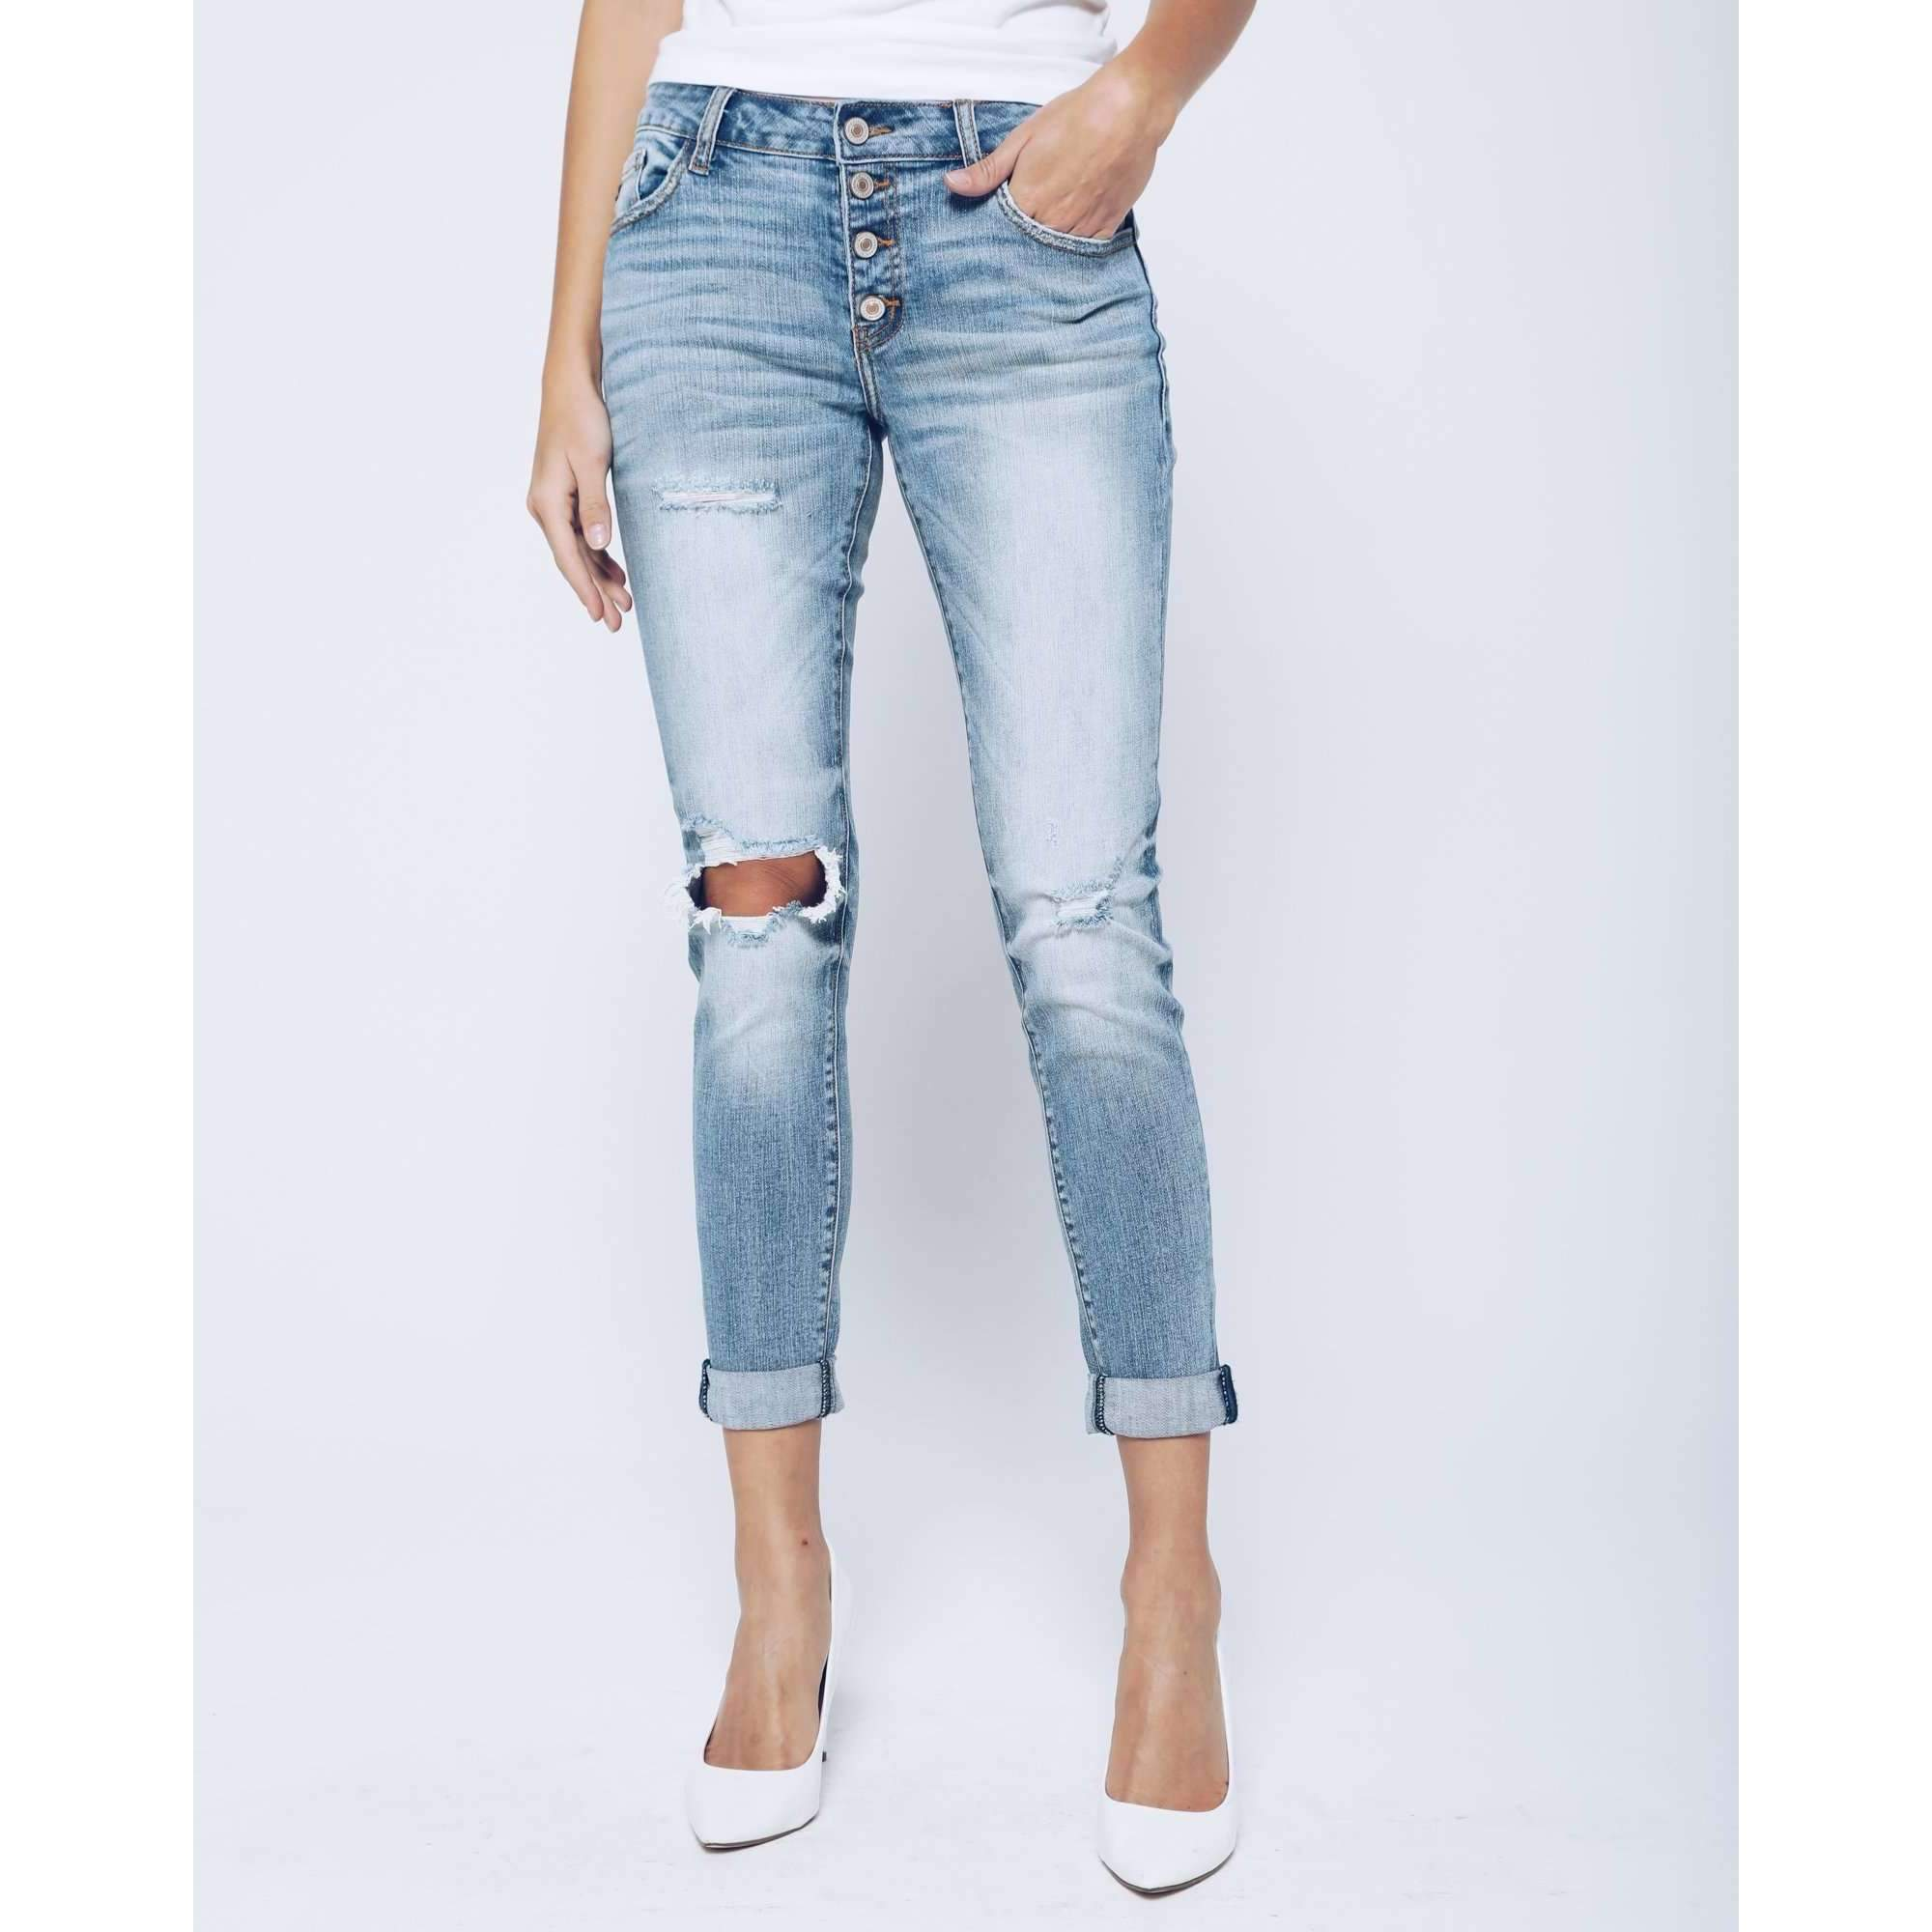 Distressed Faded Girlfriend Jeans